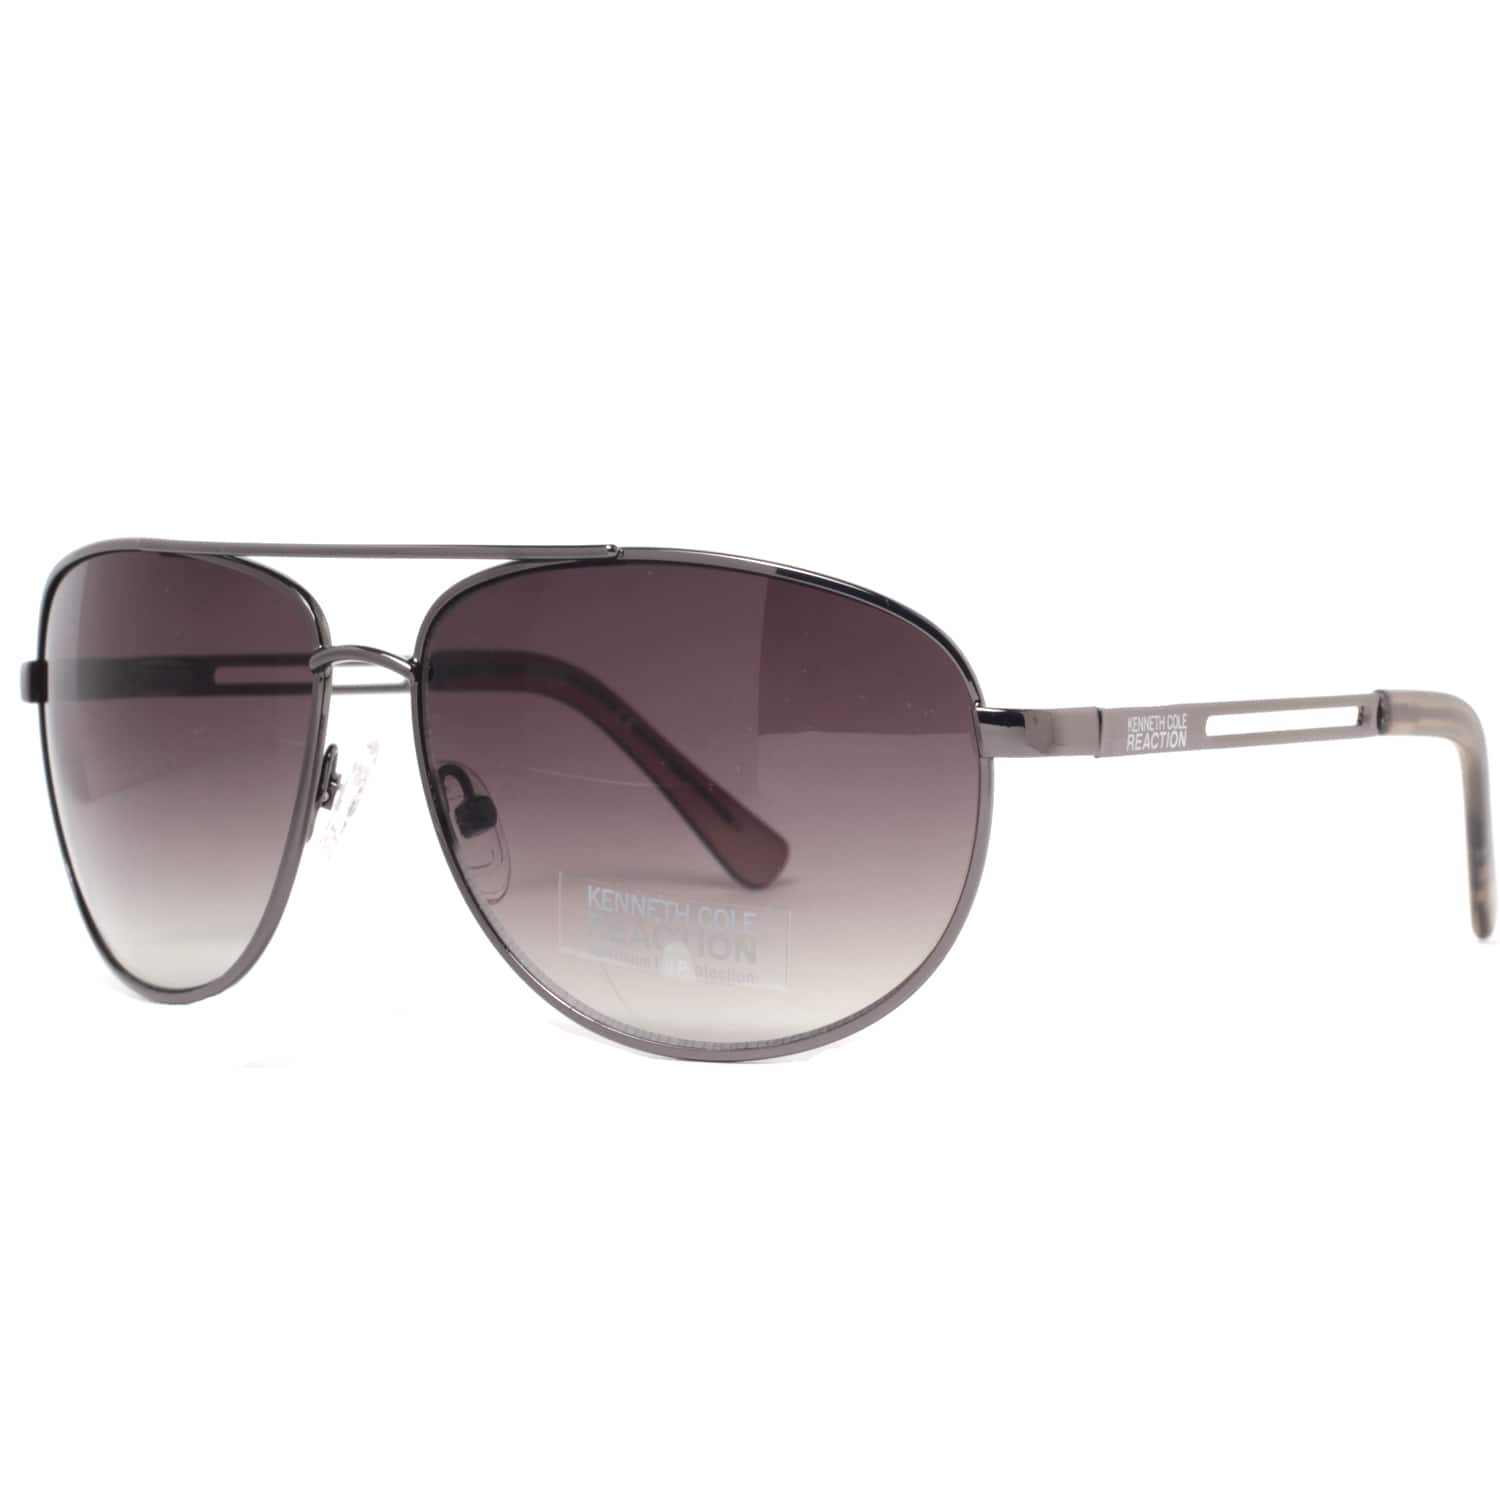 Kenneth Cole Reaction Men's Sunglasses - $24.99 - Free Shipping